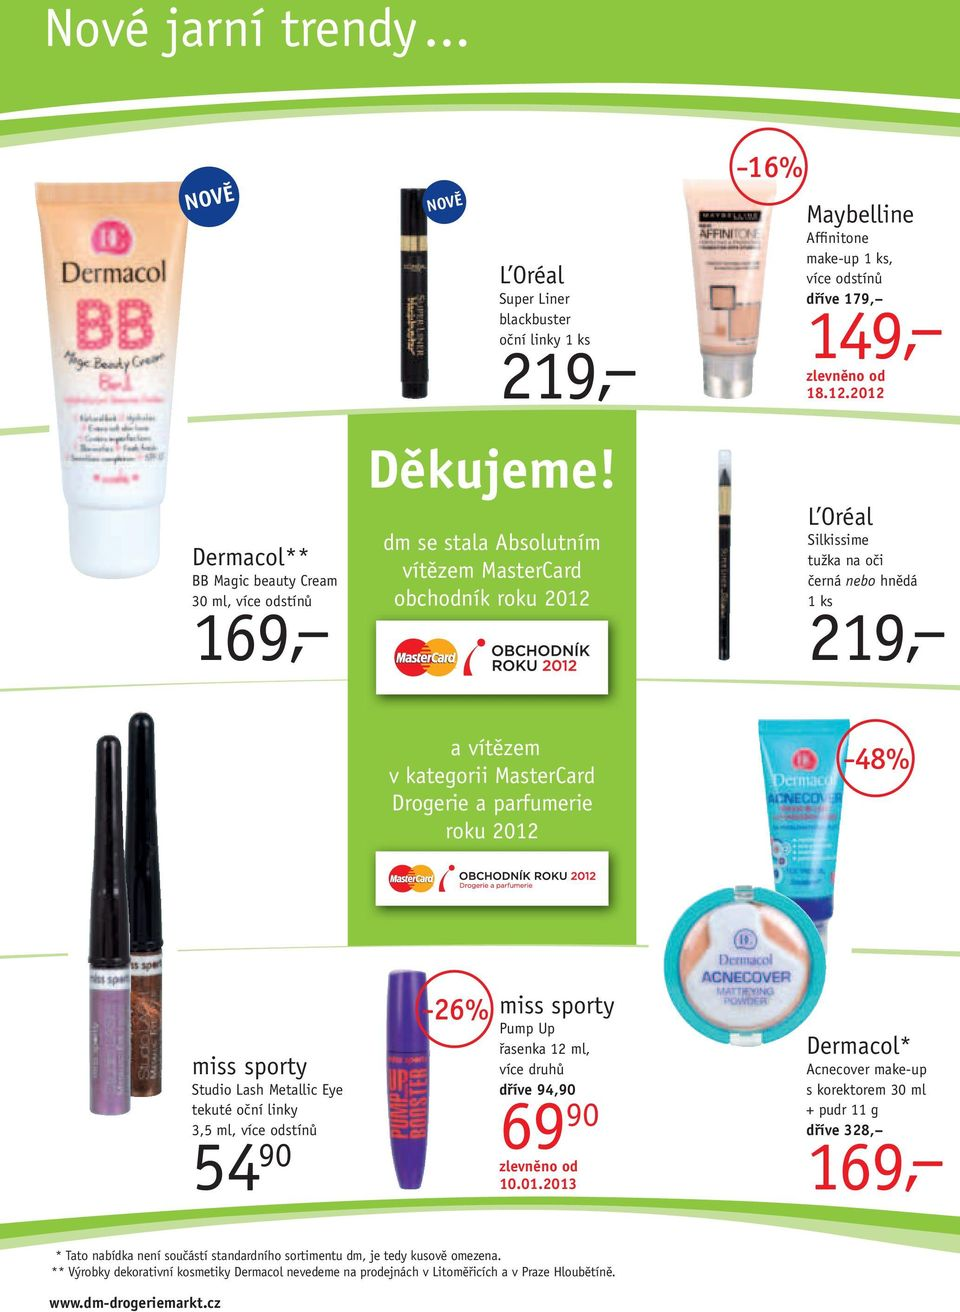 16% Maybelline Affinitone make-up 1 ks, dříve 179, 149, 18.12.